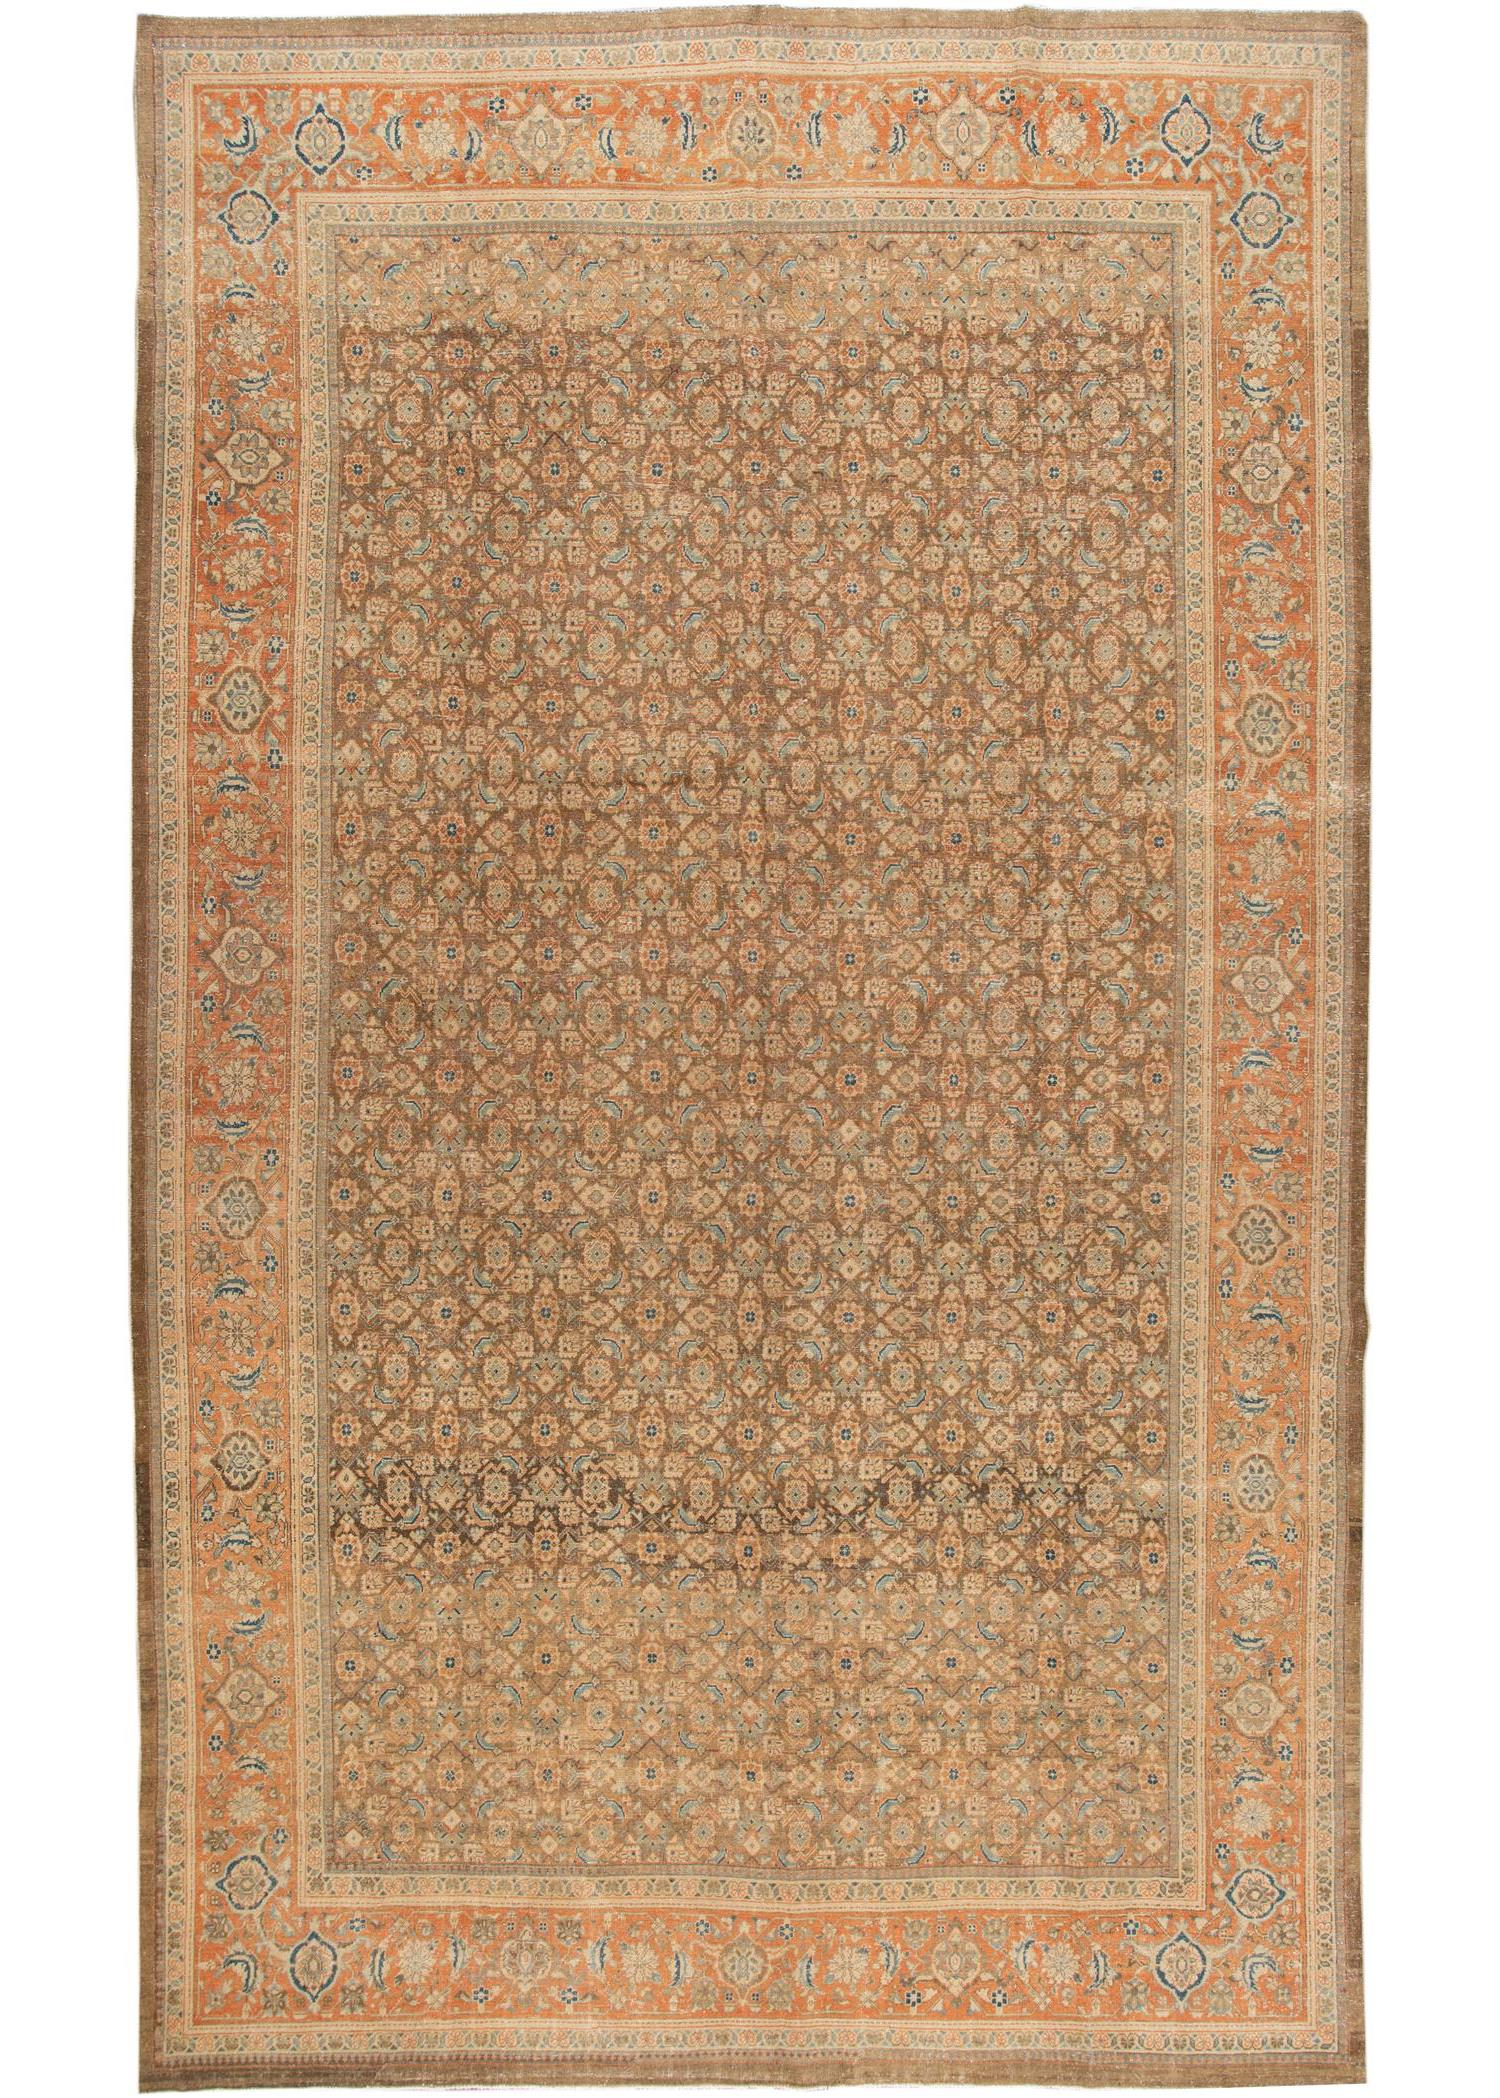 Antique Rug, 10X16